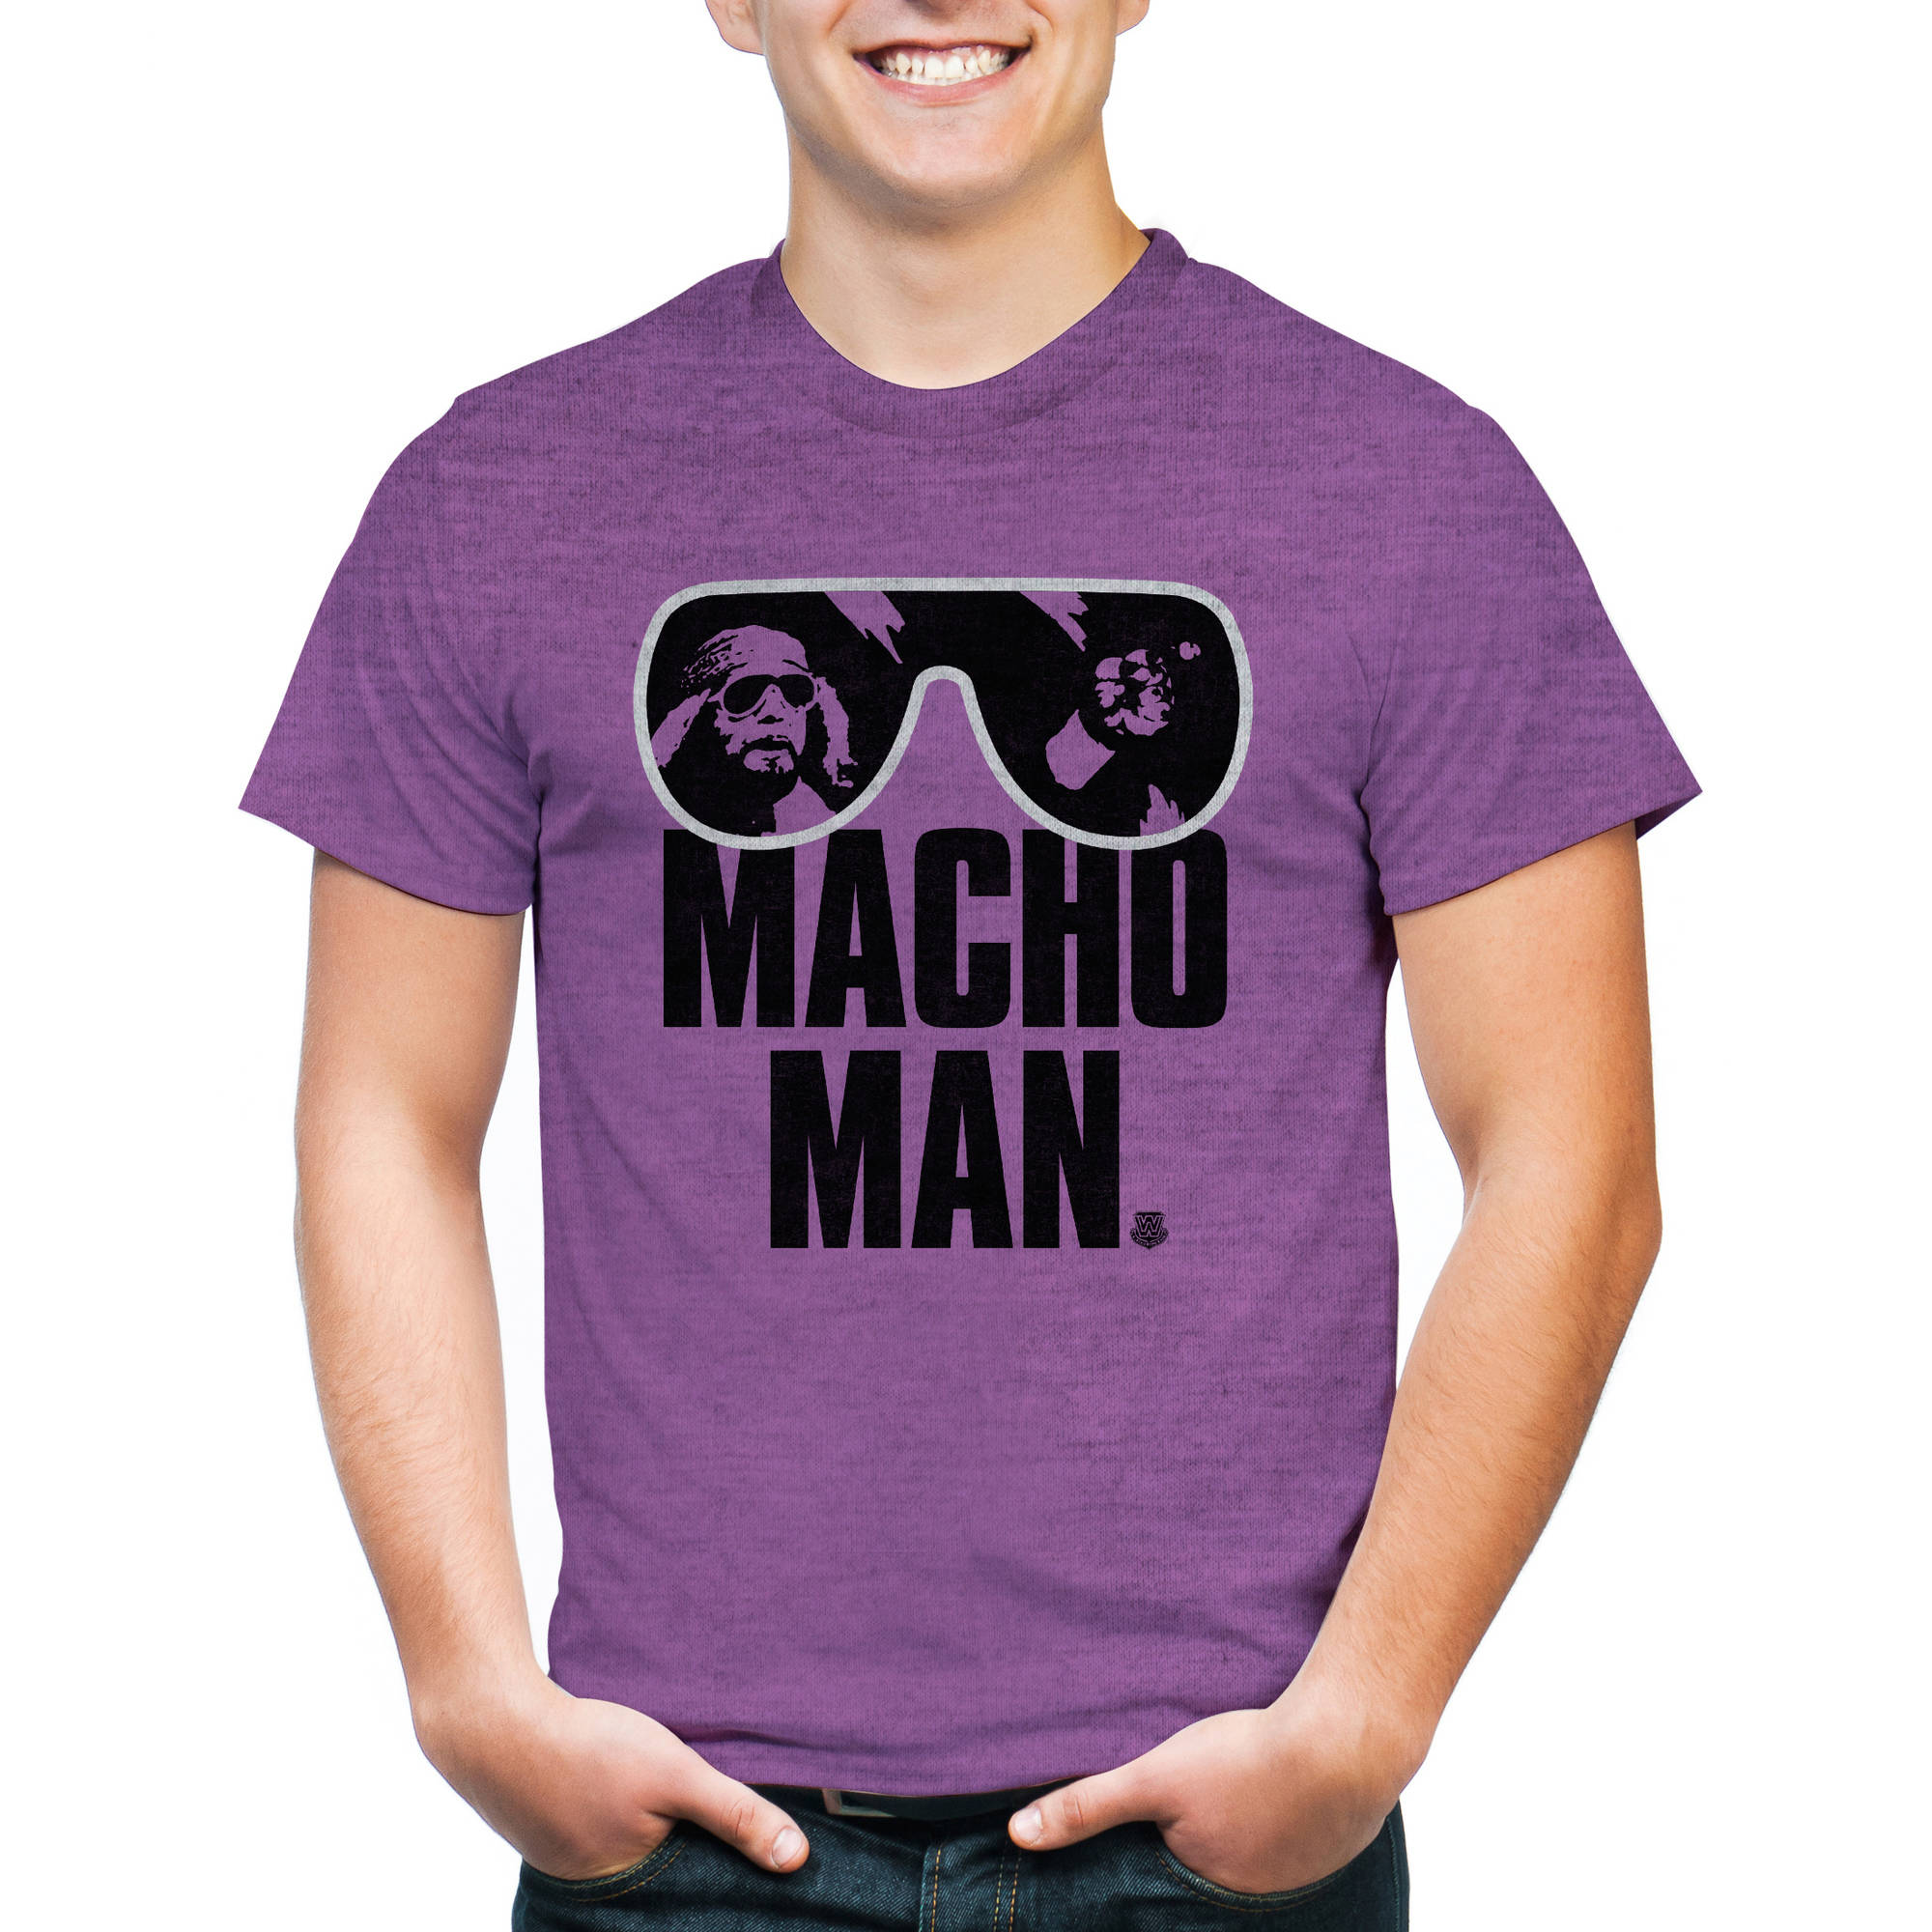 WWE Macho Man Authentic Men's Graphic Short Sleeve T-Shirt